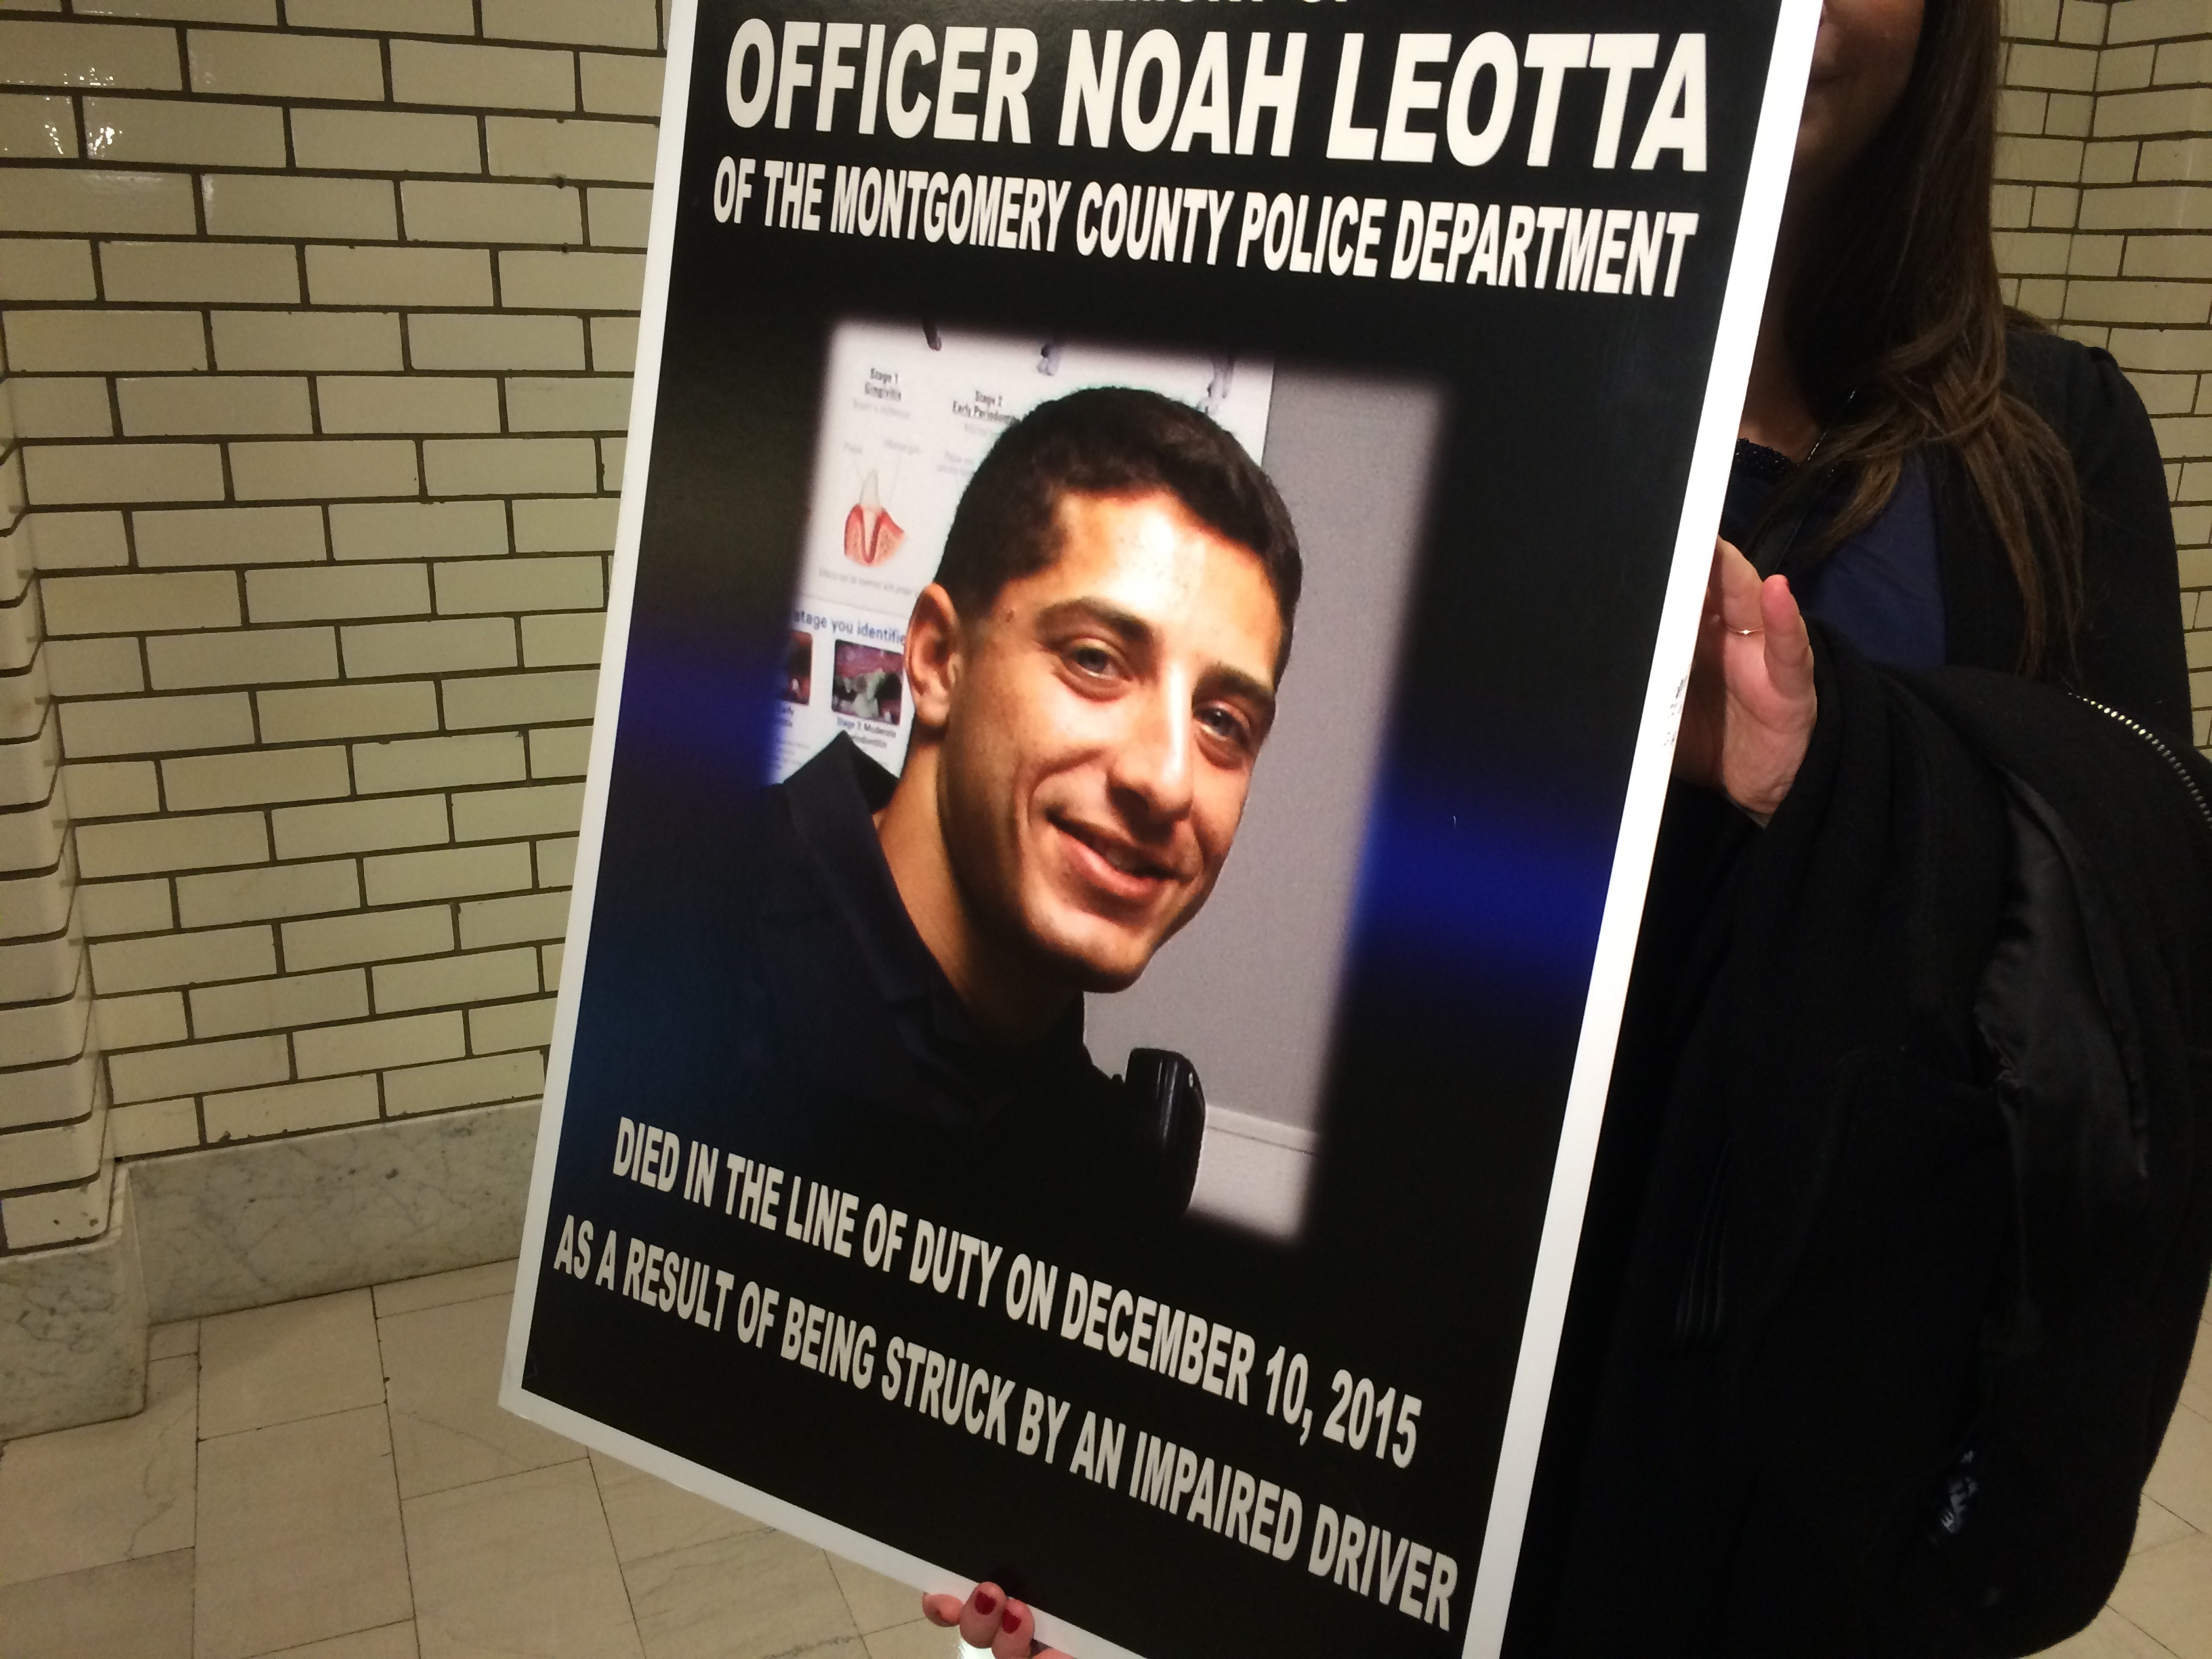 Slain officer's face to appear on ignition interlock devices